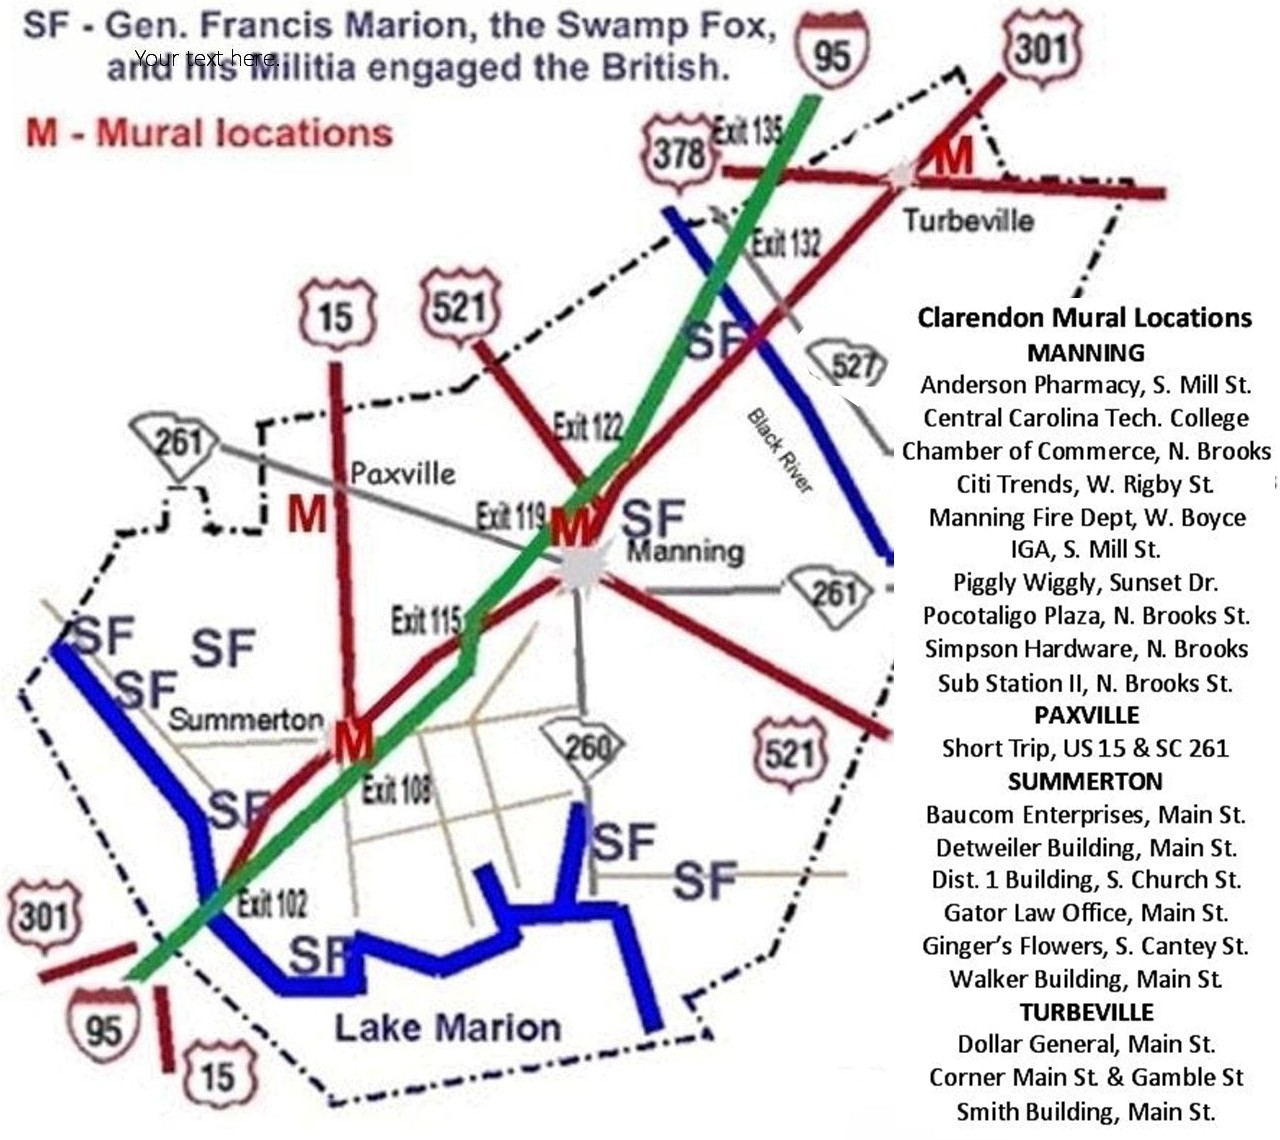 Francis Marion, Swamp Fox Murals are marked in red in 4 towns in Clarendon County, SC